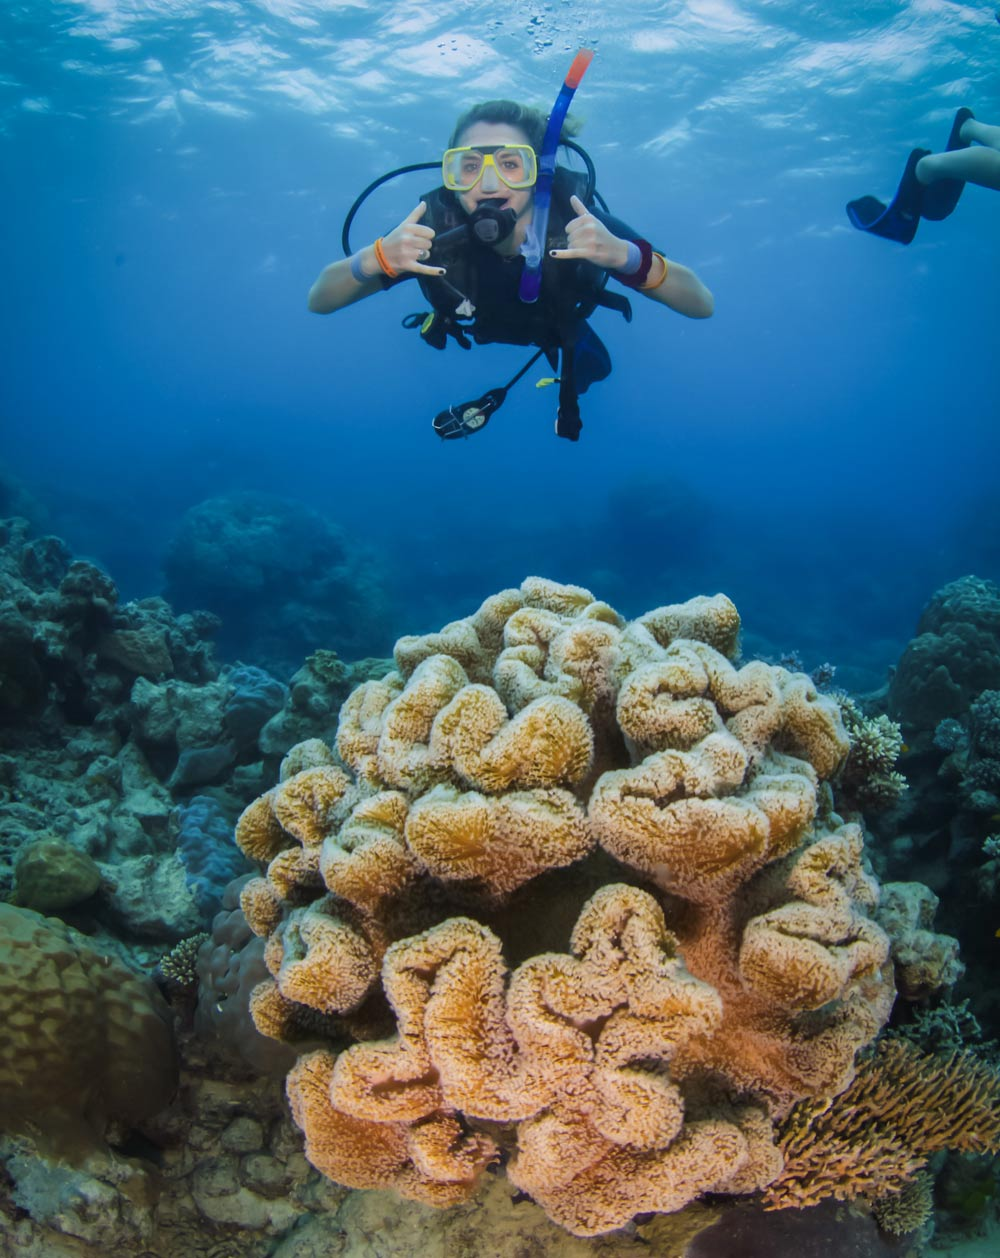 A woman enjoys diving in the Great Barrier Reef amongst the coral